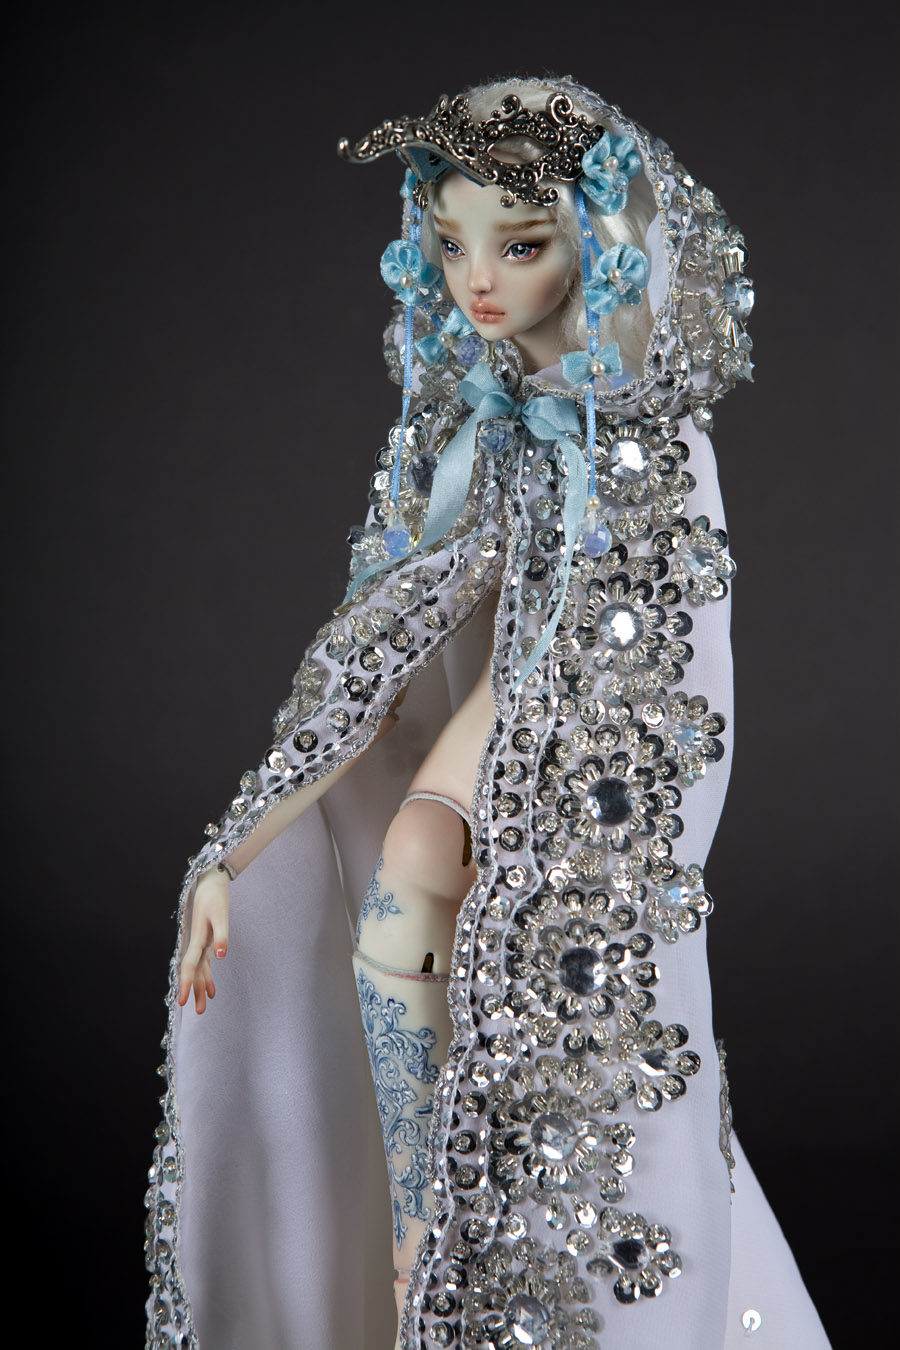 It is not the world of smiles: Enchanted Dolls by Marina Bychkova - 55